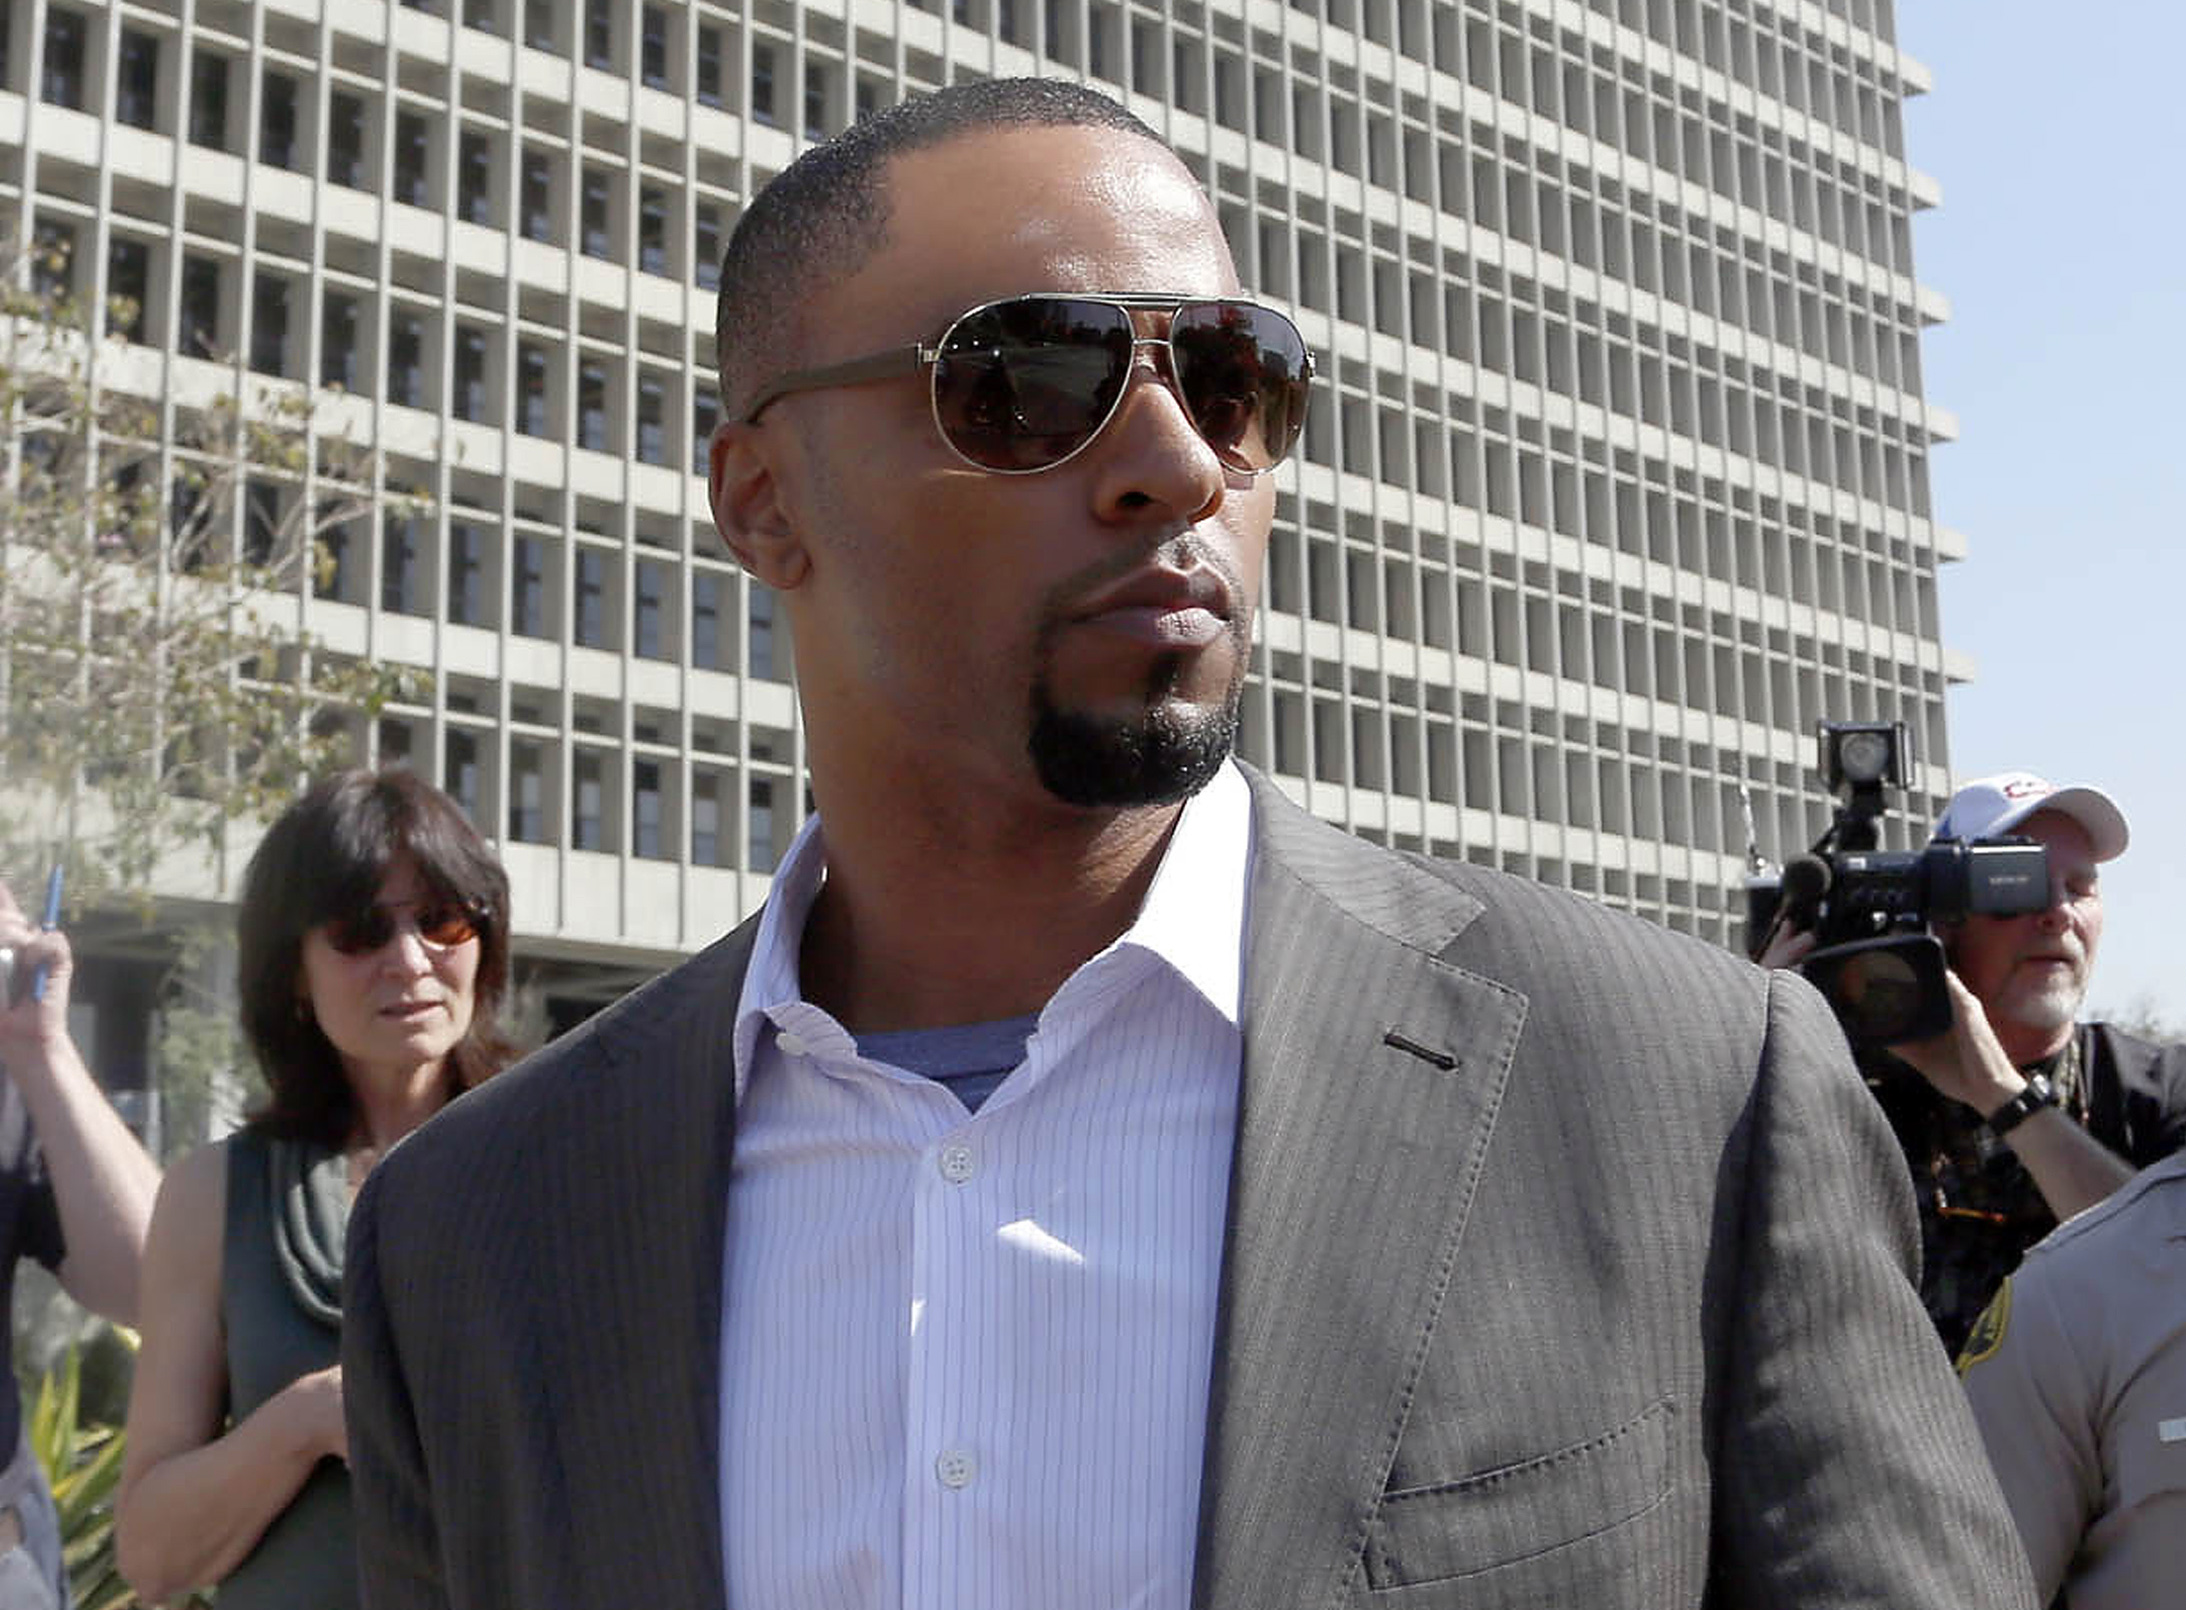 In this Feb. 14, 2014, photo, former NFL safety Darren Sharper leaves a courthouse in Los Angeles. An arrest warrant has been issued for Sharper and another man, accusing them of raping two women in New Orleans last year. Sharper also is under investigation in sexual assault cases in Florida, Nevada and Arizona and has pleaded not guilty to rape charges in Los Angeles